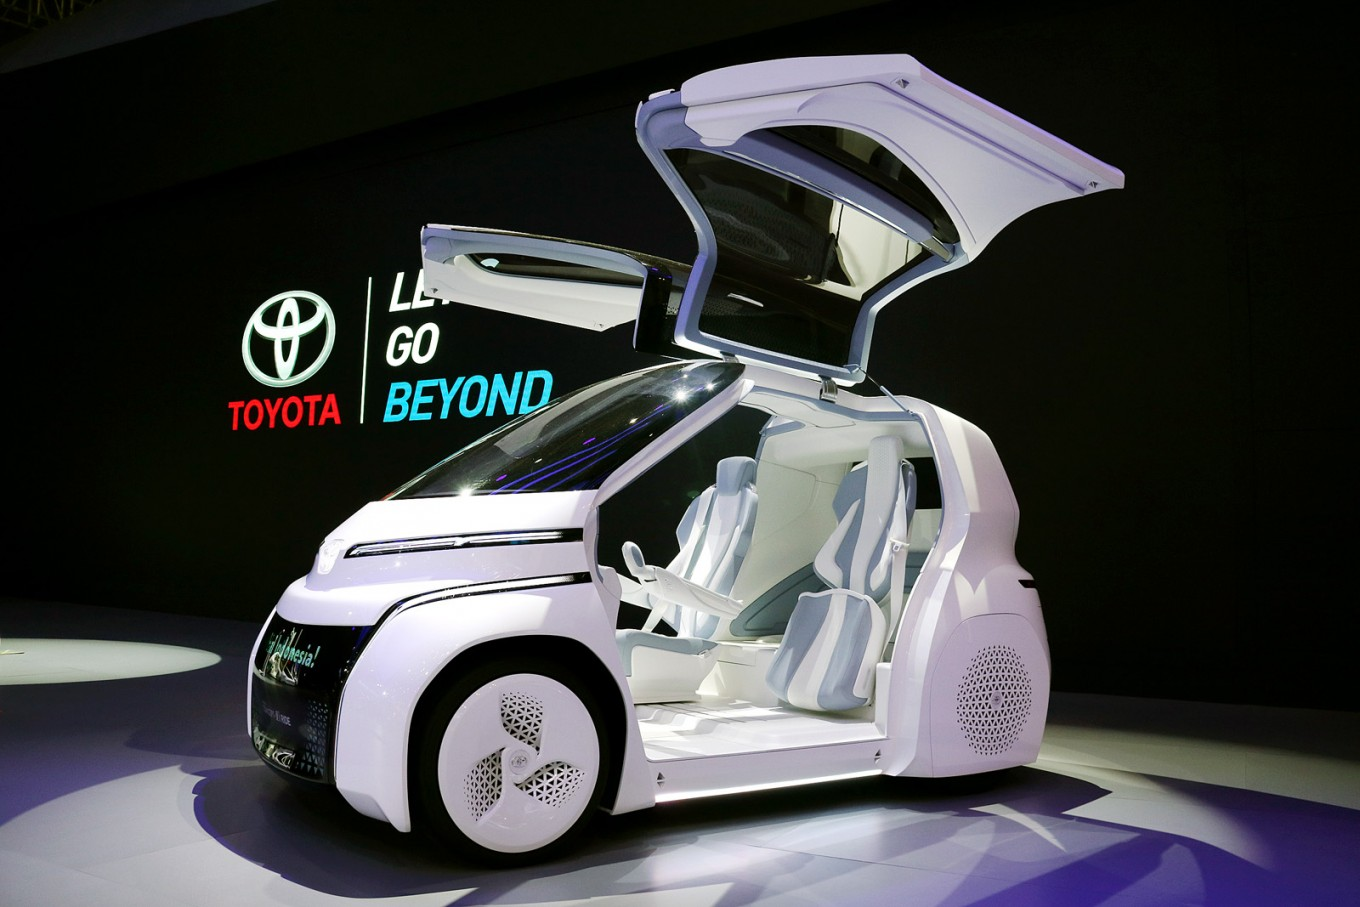 Toyota Concept Cars Ready For Future